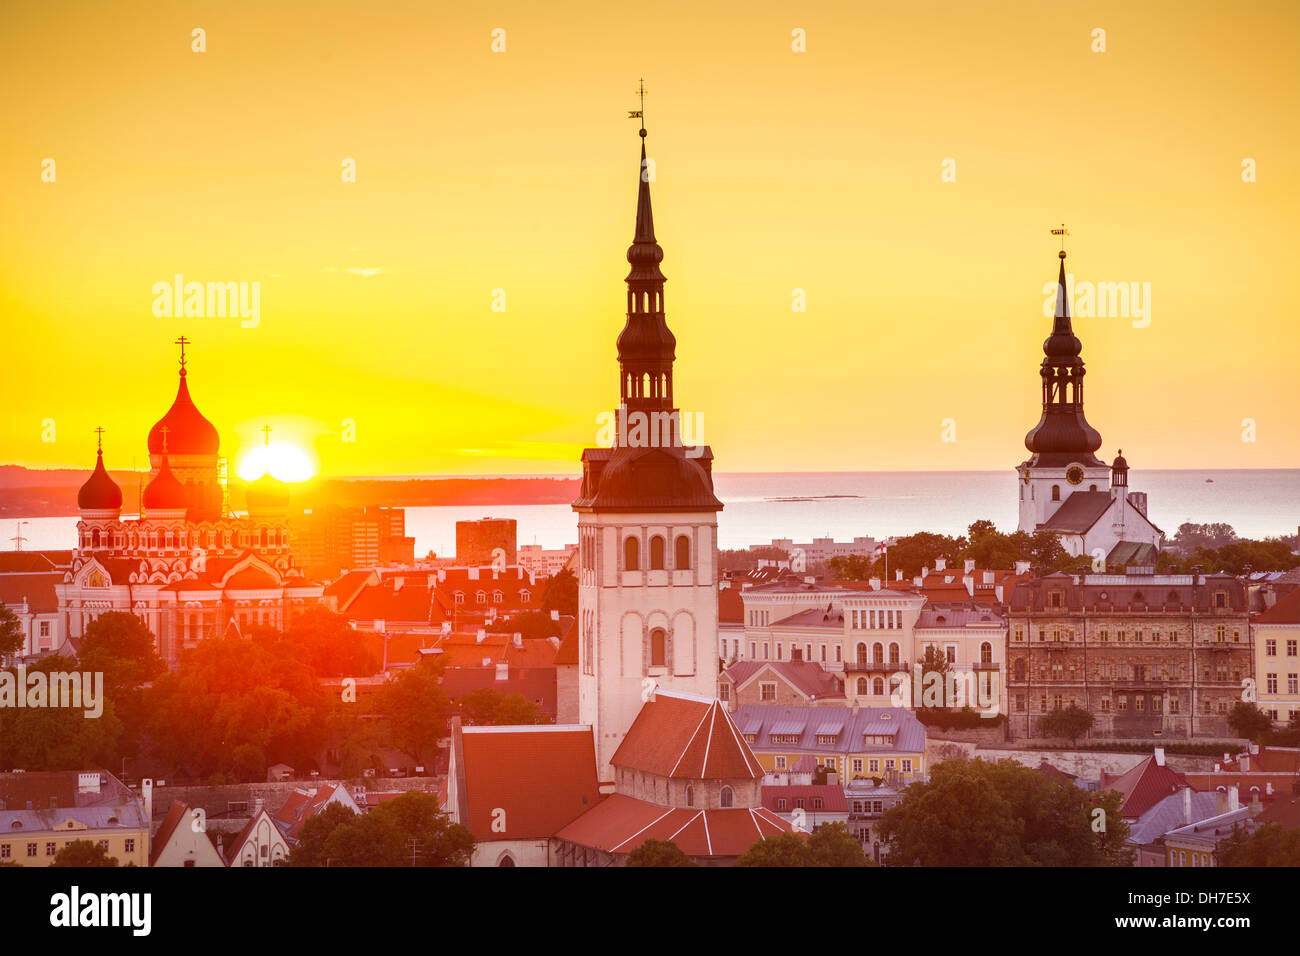 Sunset in Tallinn, Estonia at the old city. - Stock Image